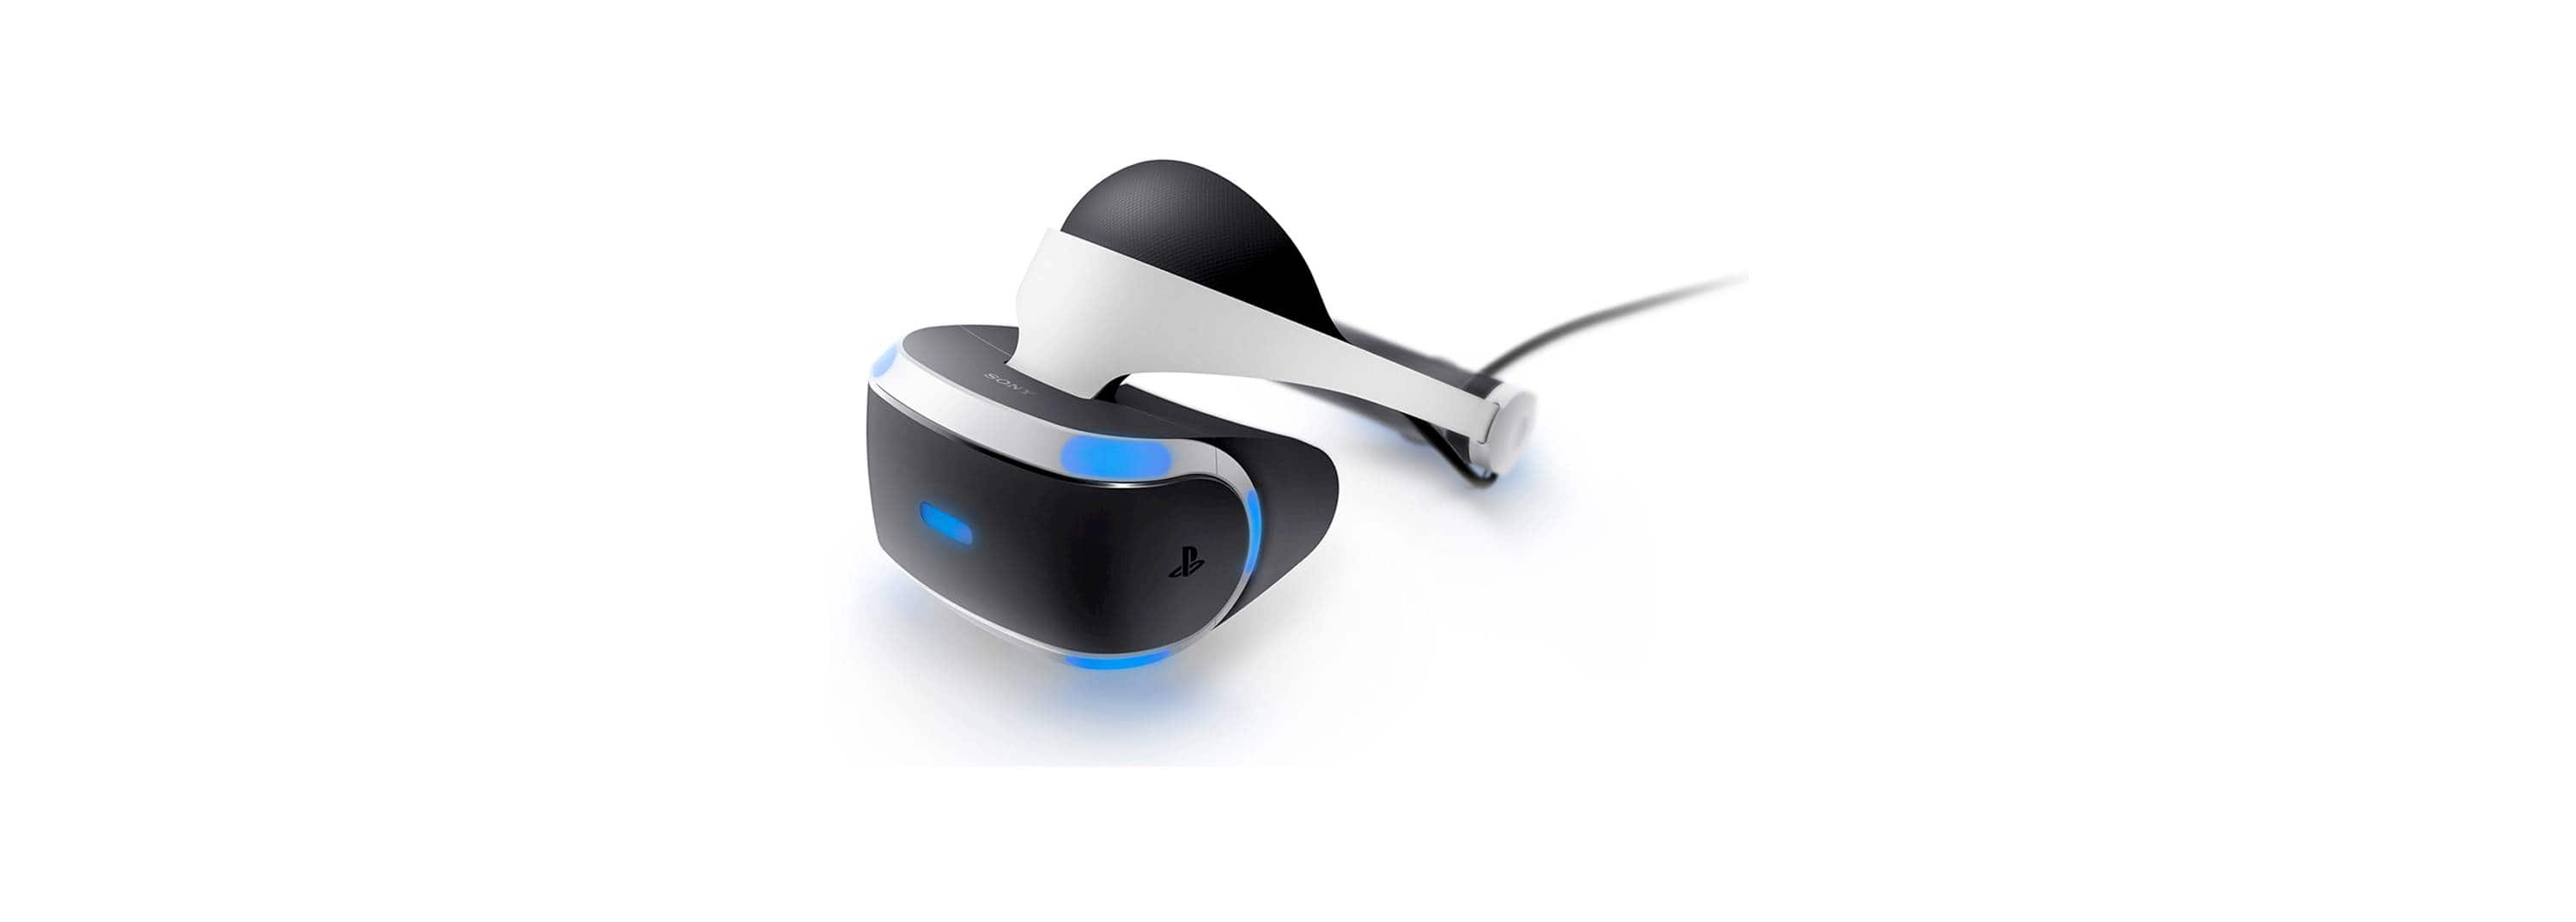 Target Playstation VR Discounts BaseBundle $199.99, Doom Preorder $299.99, Gran Turismo Bundle $299.99, Skyrim Bundle $349.99 and Launch Bundle $349.99 Free Pickup